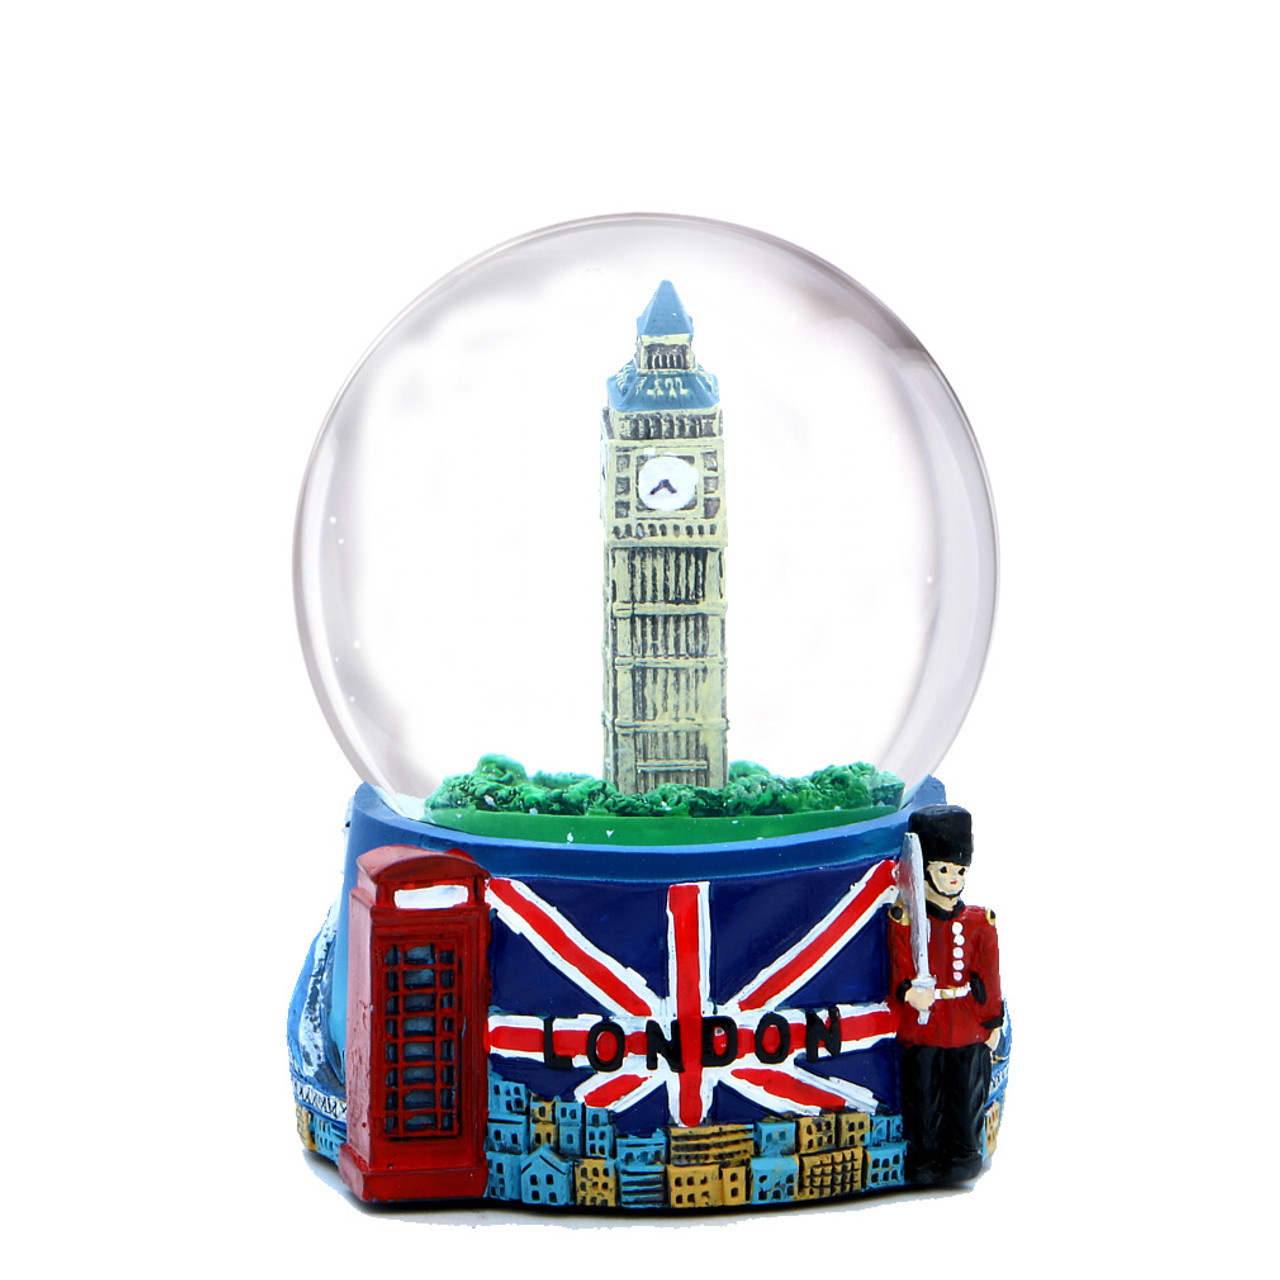 Souvenir snow globes from cities and countries around the world colorful london snow globe gumiabroncs Images